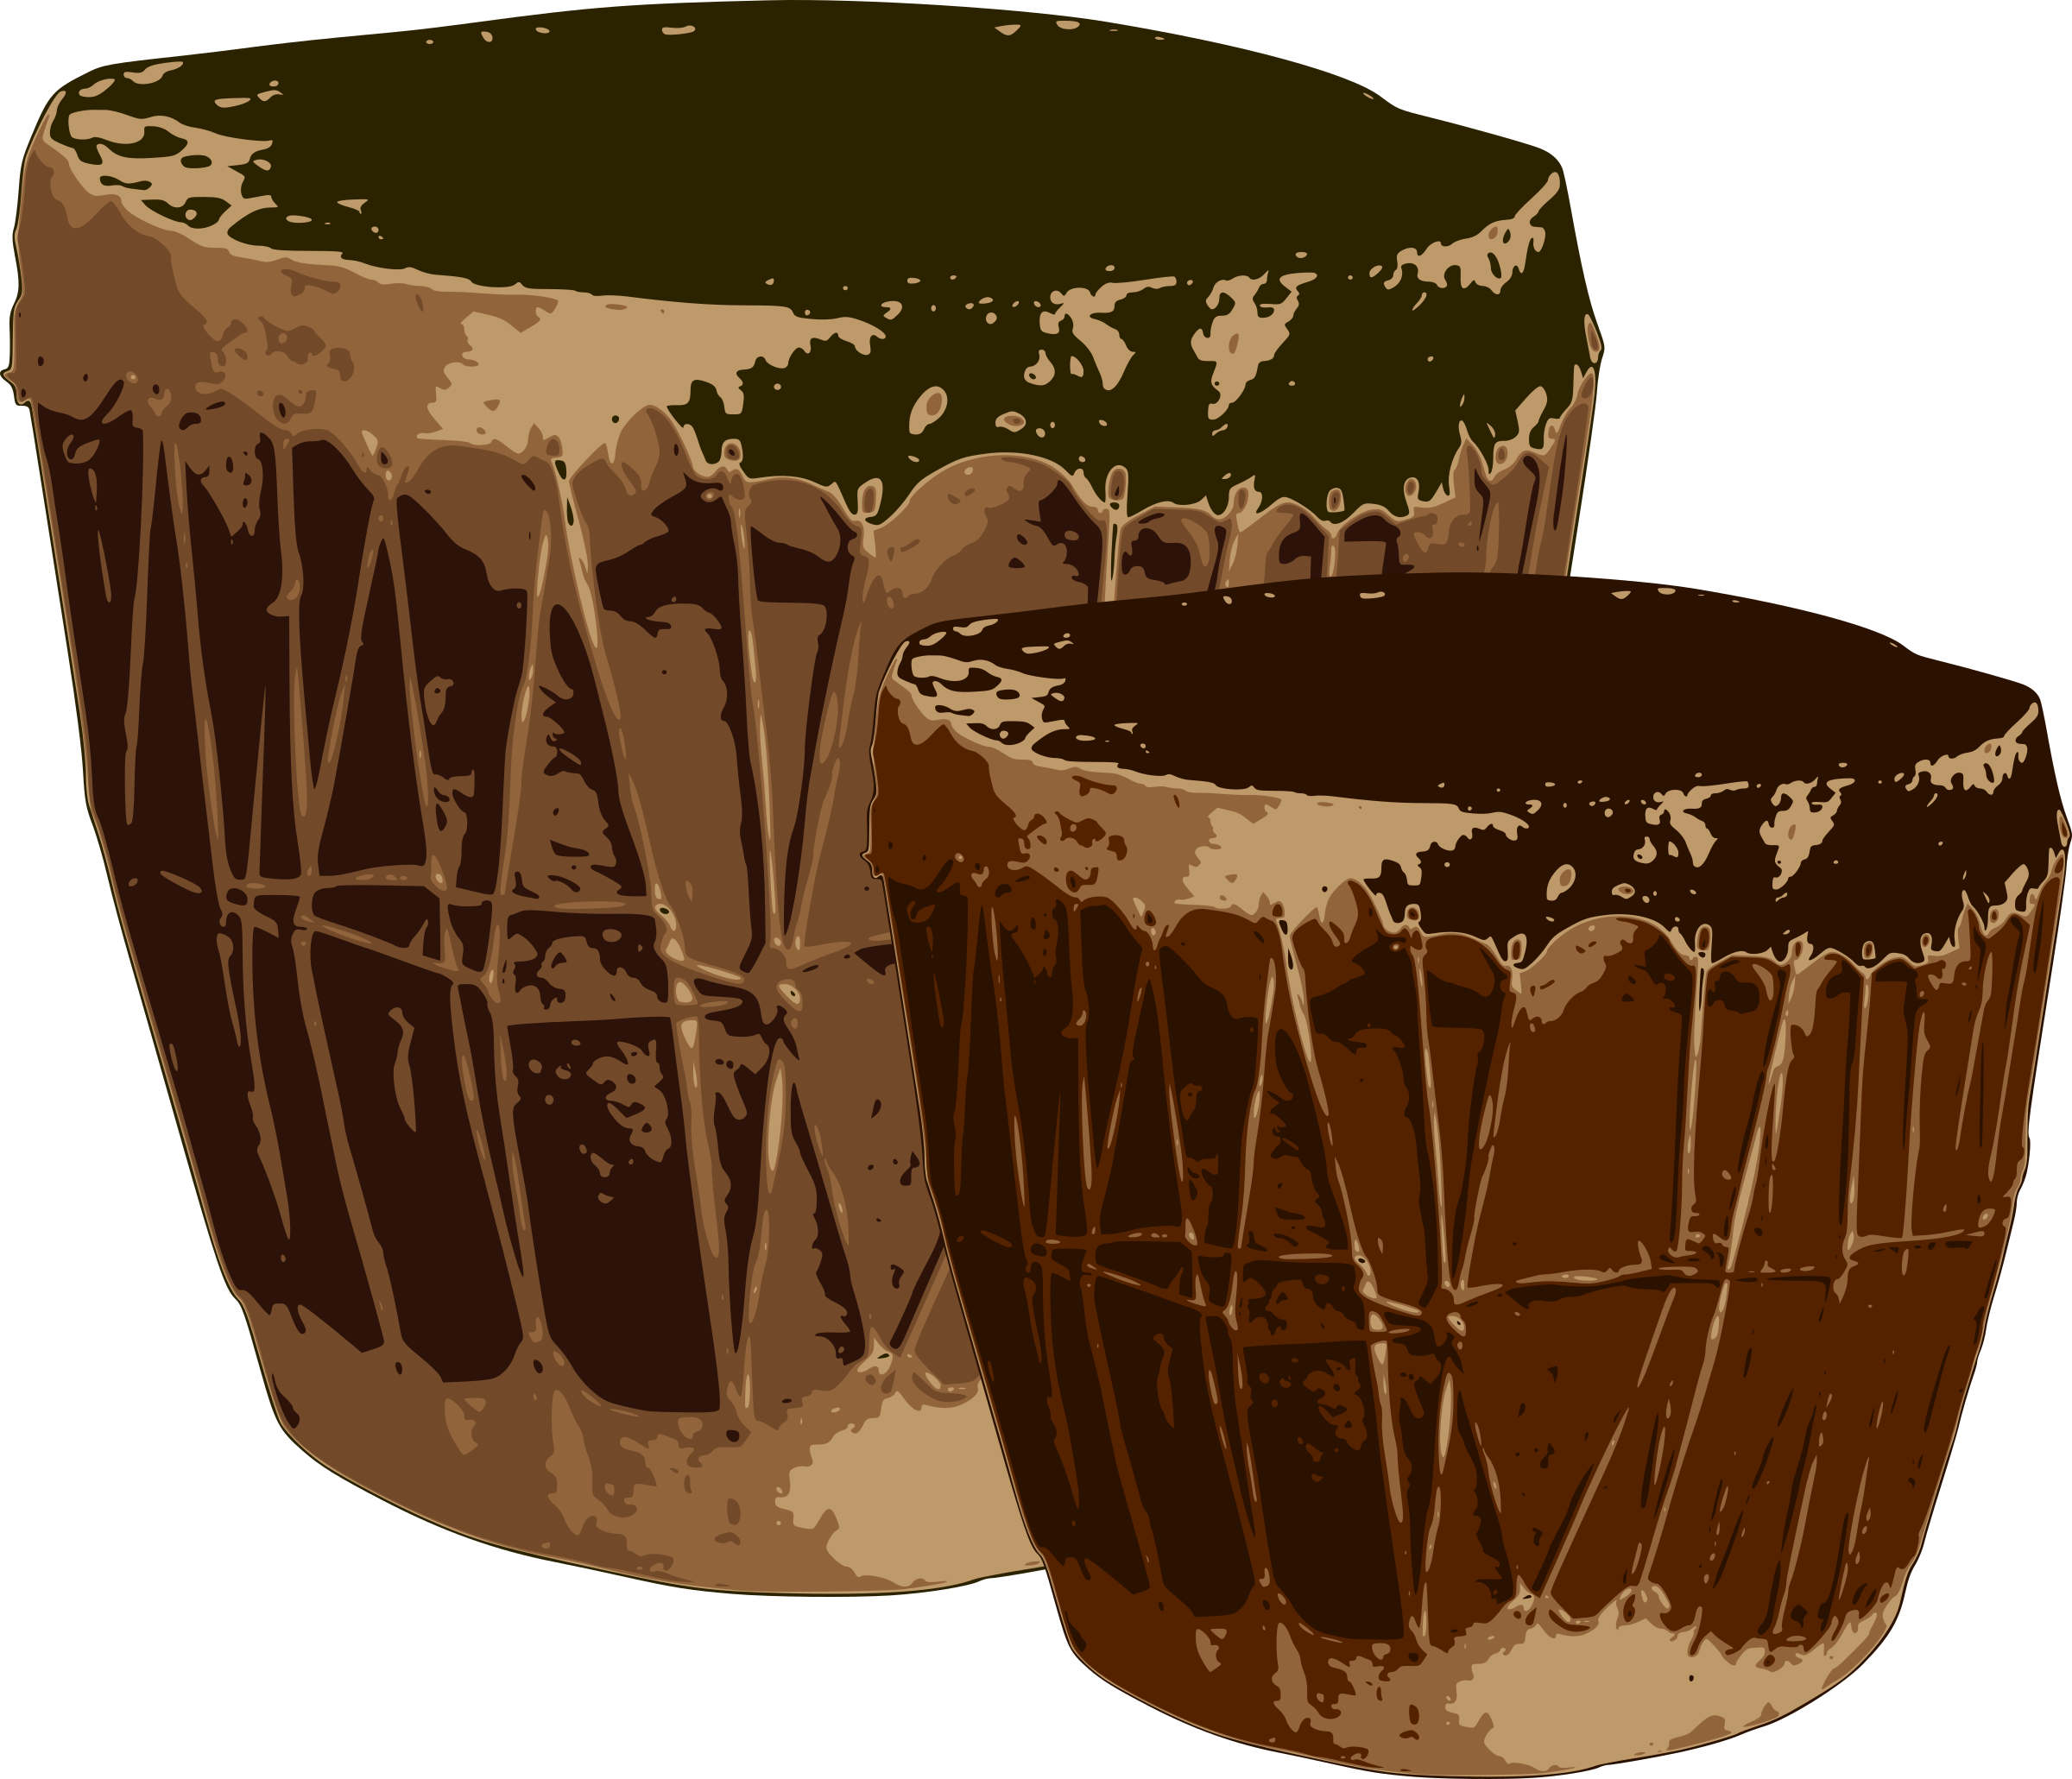 Small Hand Drum by hackdorte